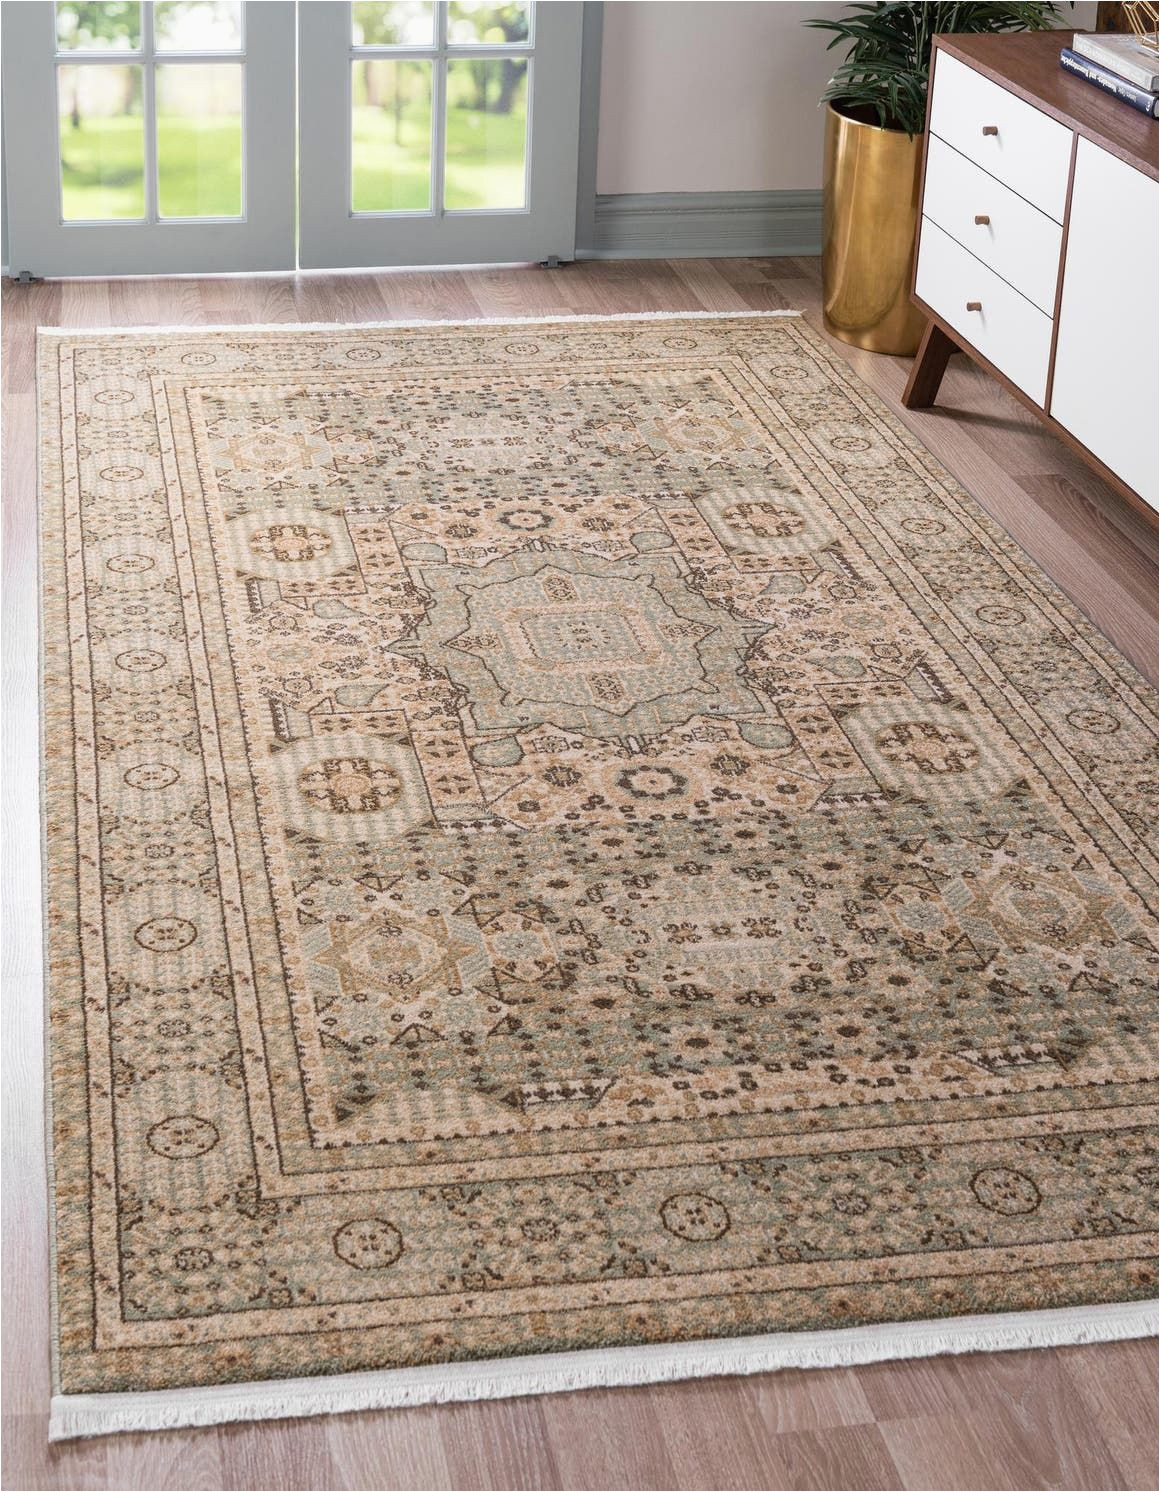 Bed Bath and Beyond area Rugs 9×12 Amina Light Green Vintage 9×12 area Rug In 2020